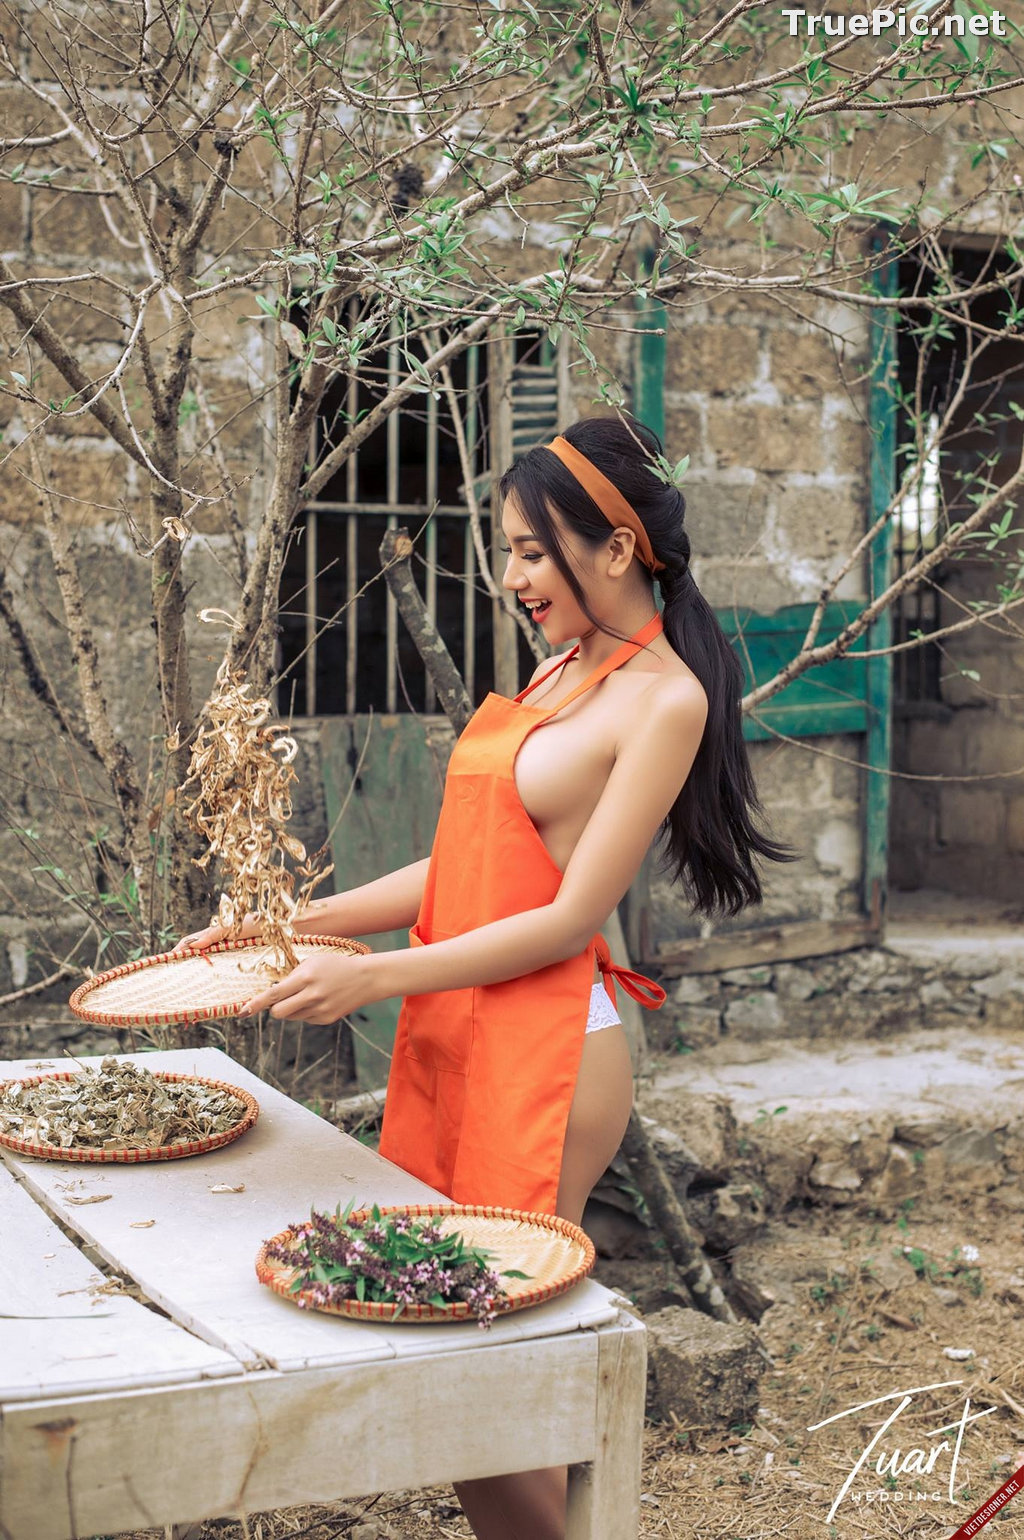 Image Vietnamese Hot Model - Two Sexy Girl In The Valley - TruePic.net - Picture-3